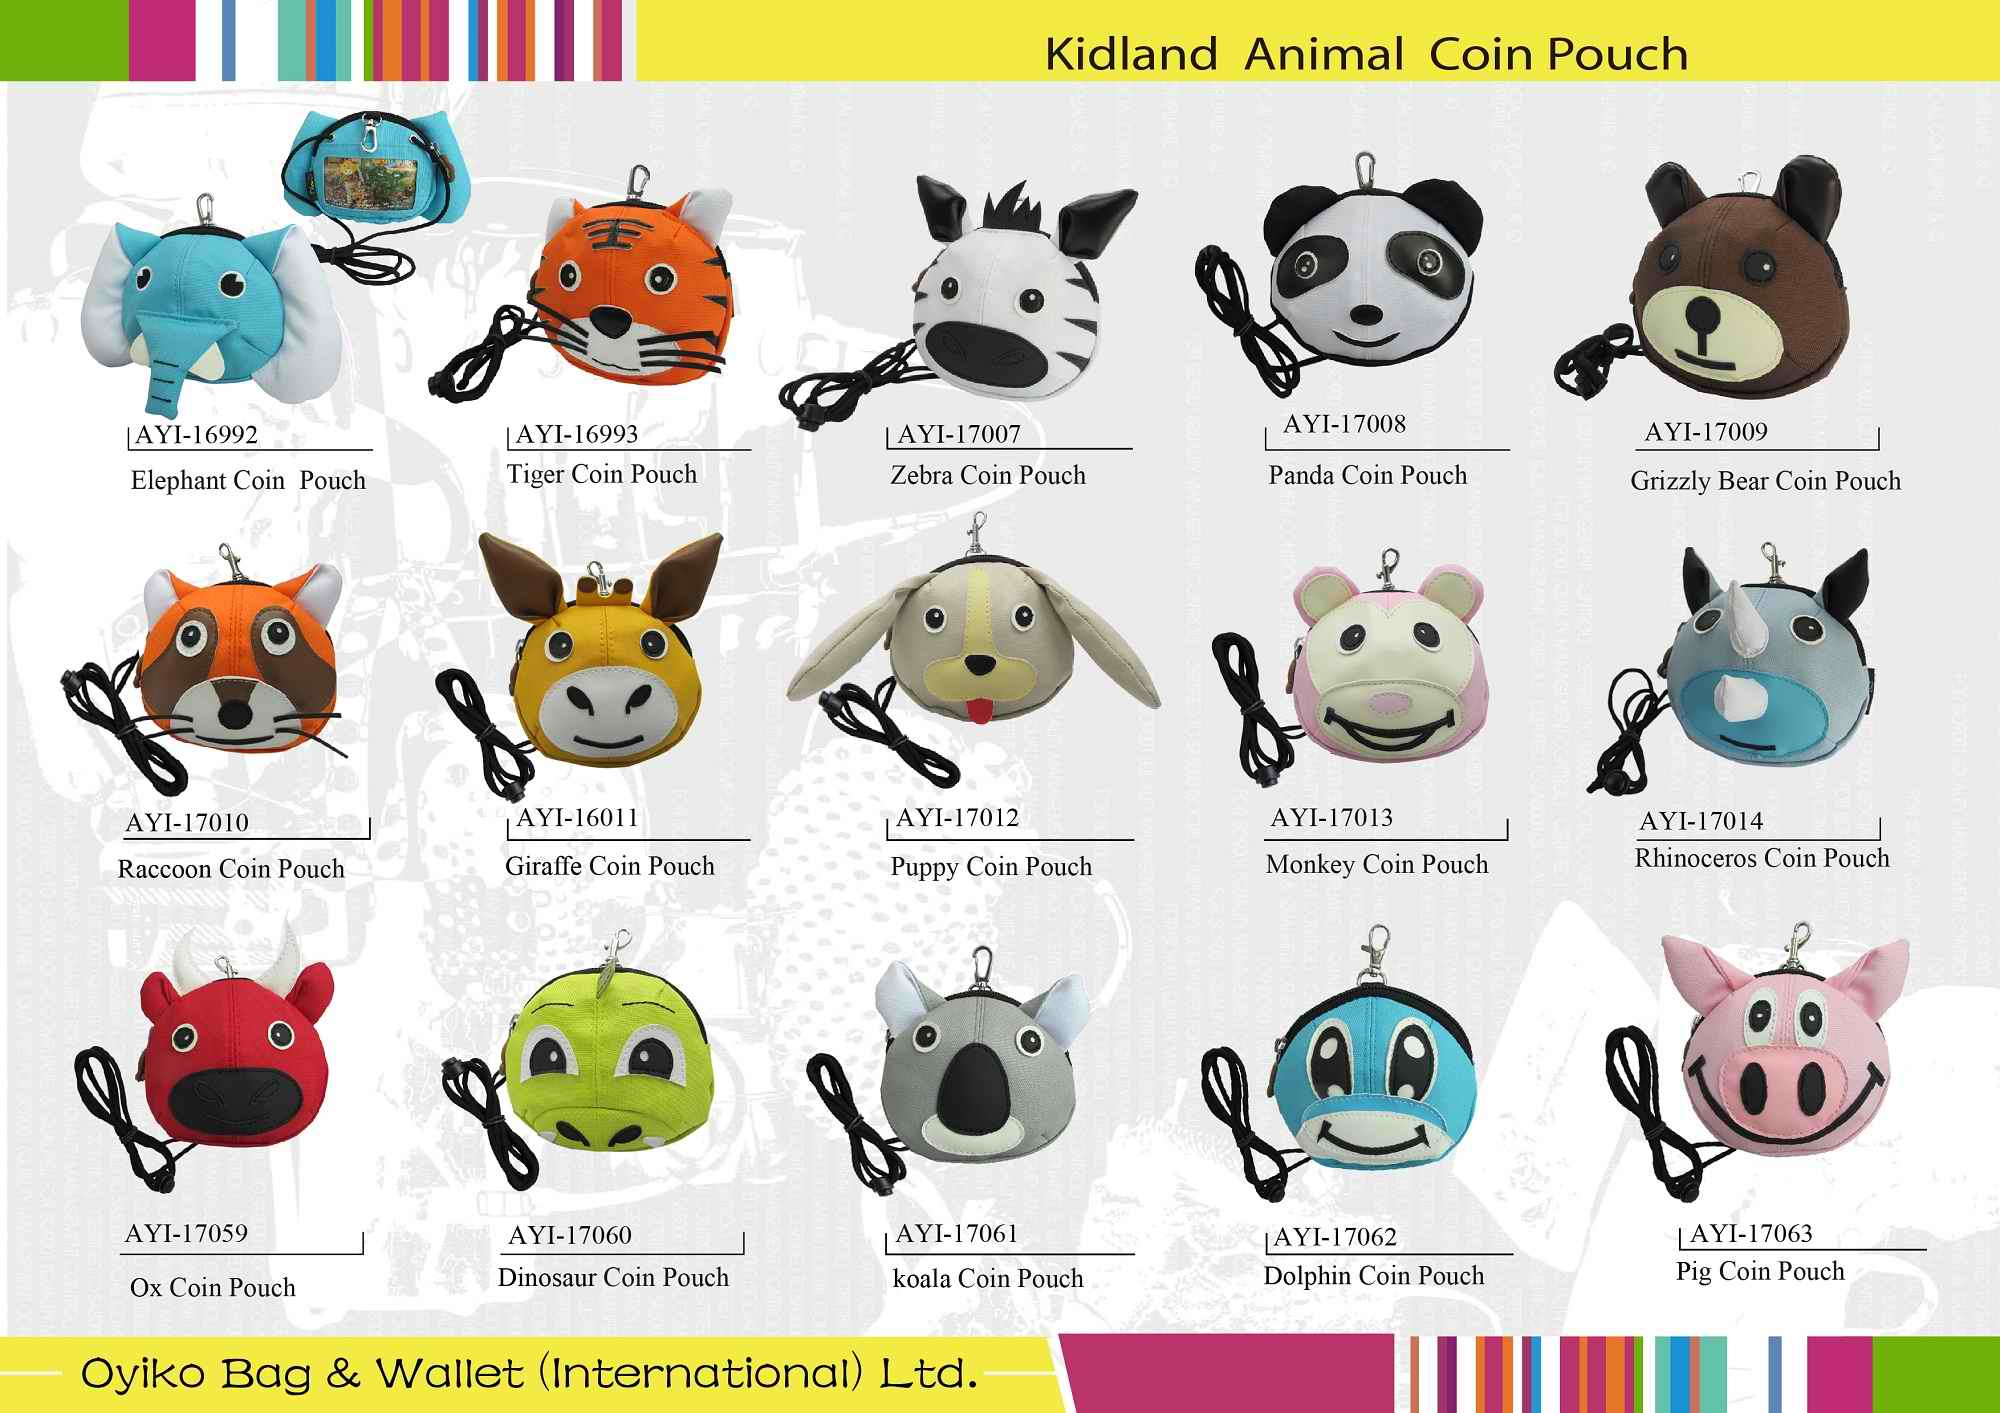 Kidland Animal Coin Pouch.jpg